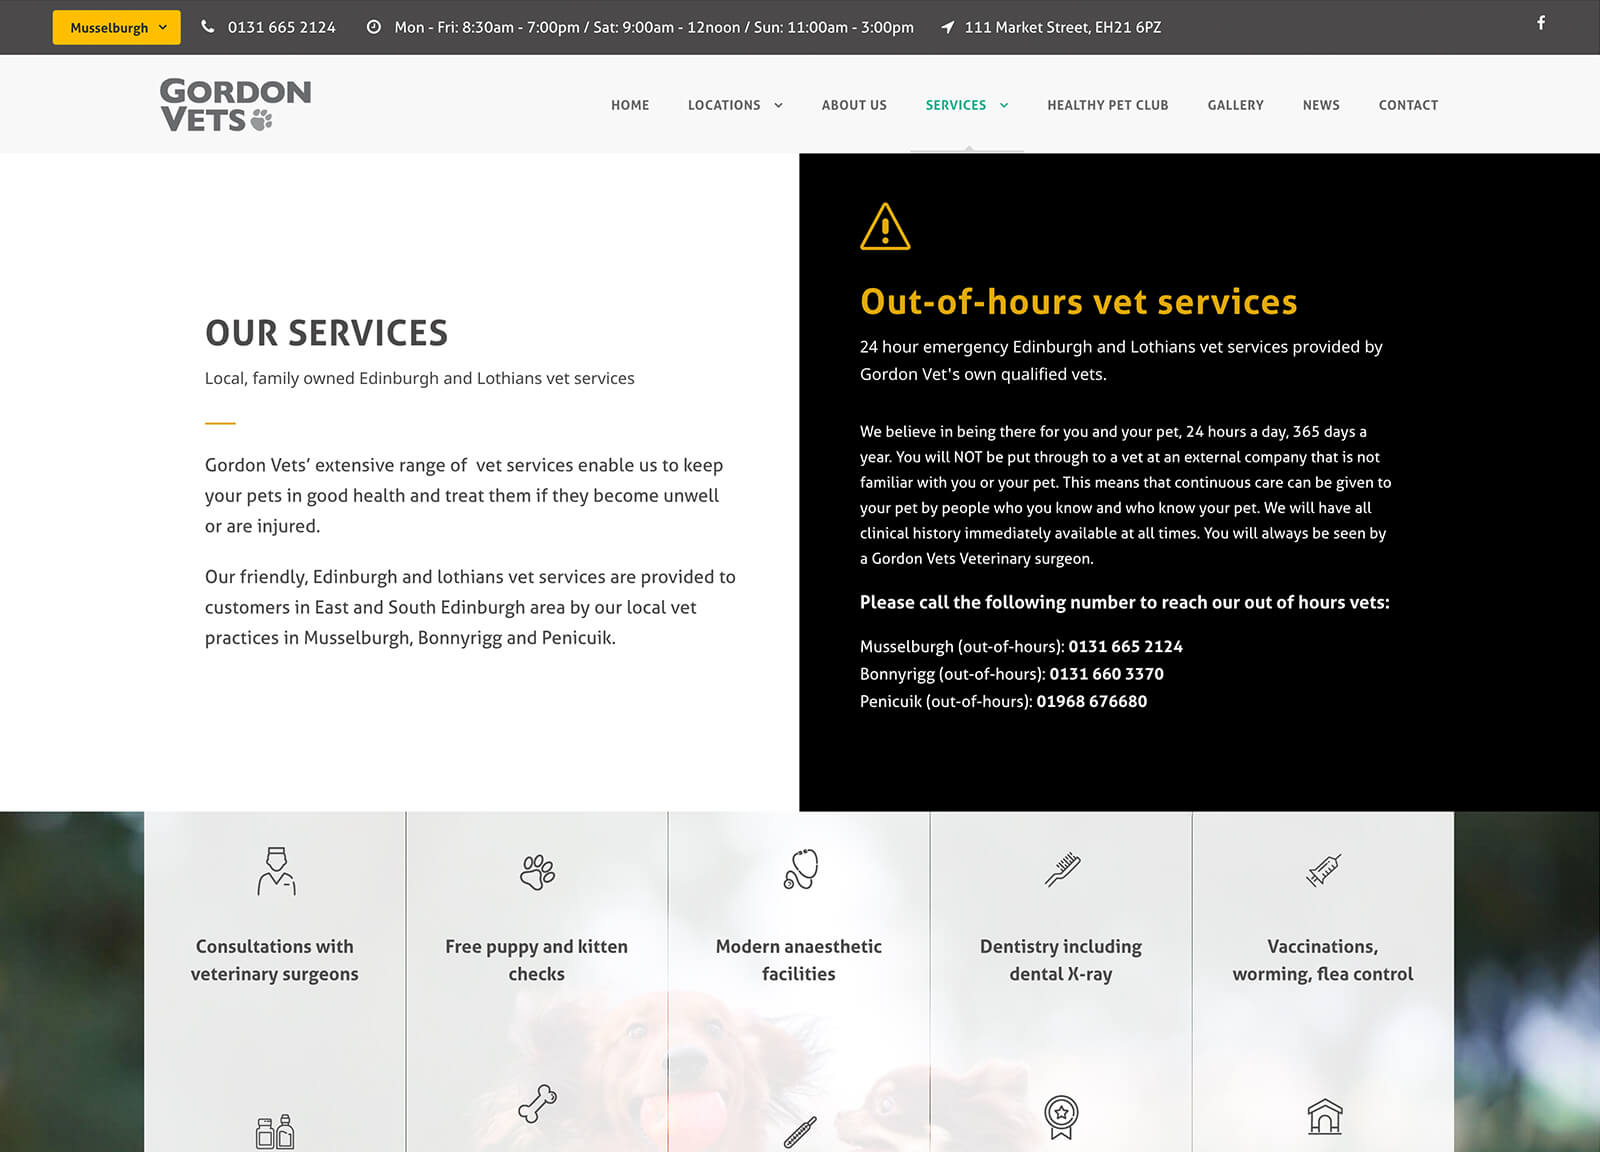 Vet Services page - Gordon Vets website design